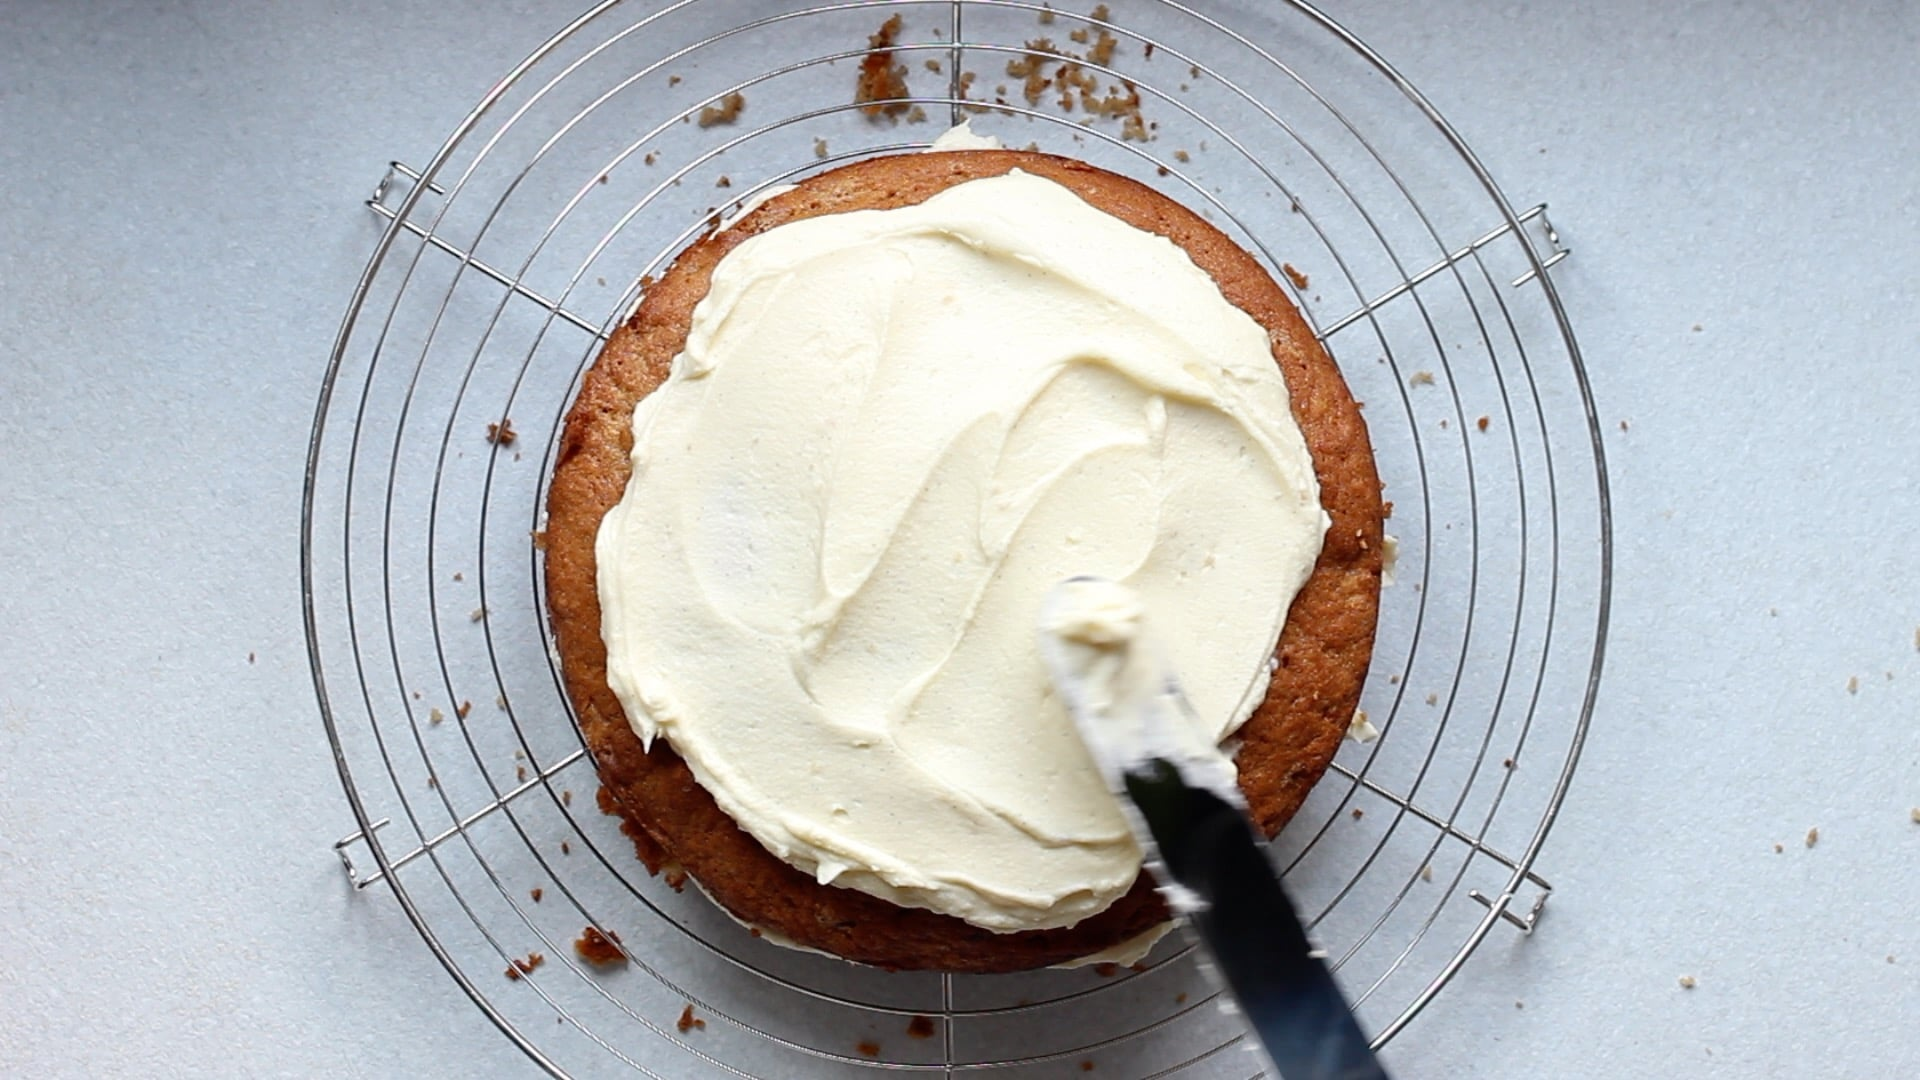 Top the cake with the remaining half of cream cheese frosting